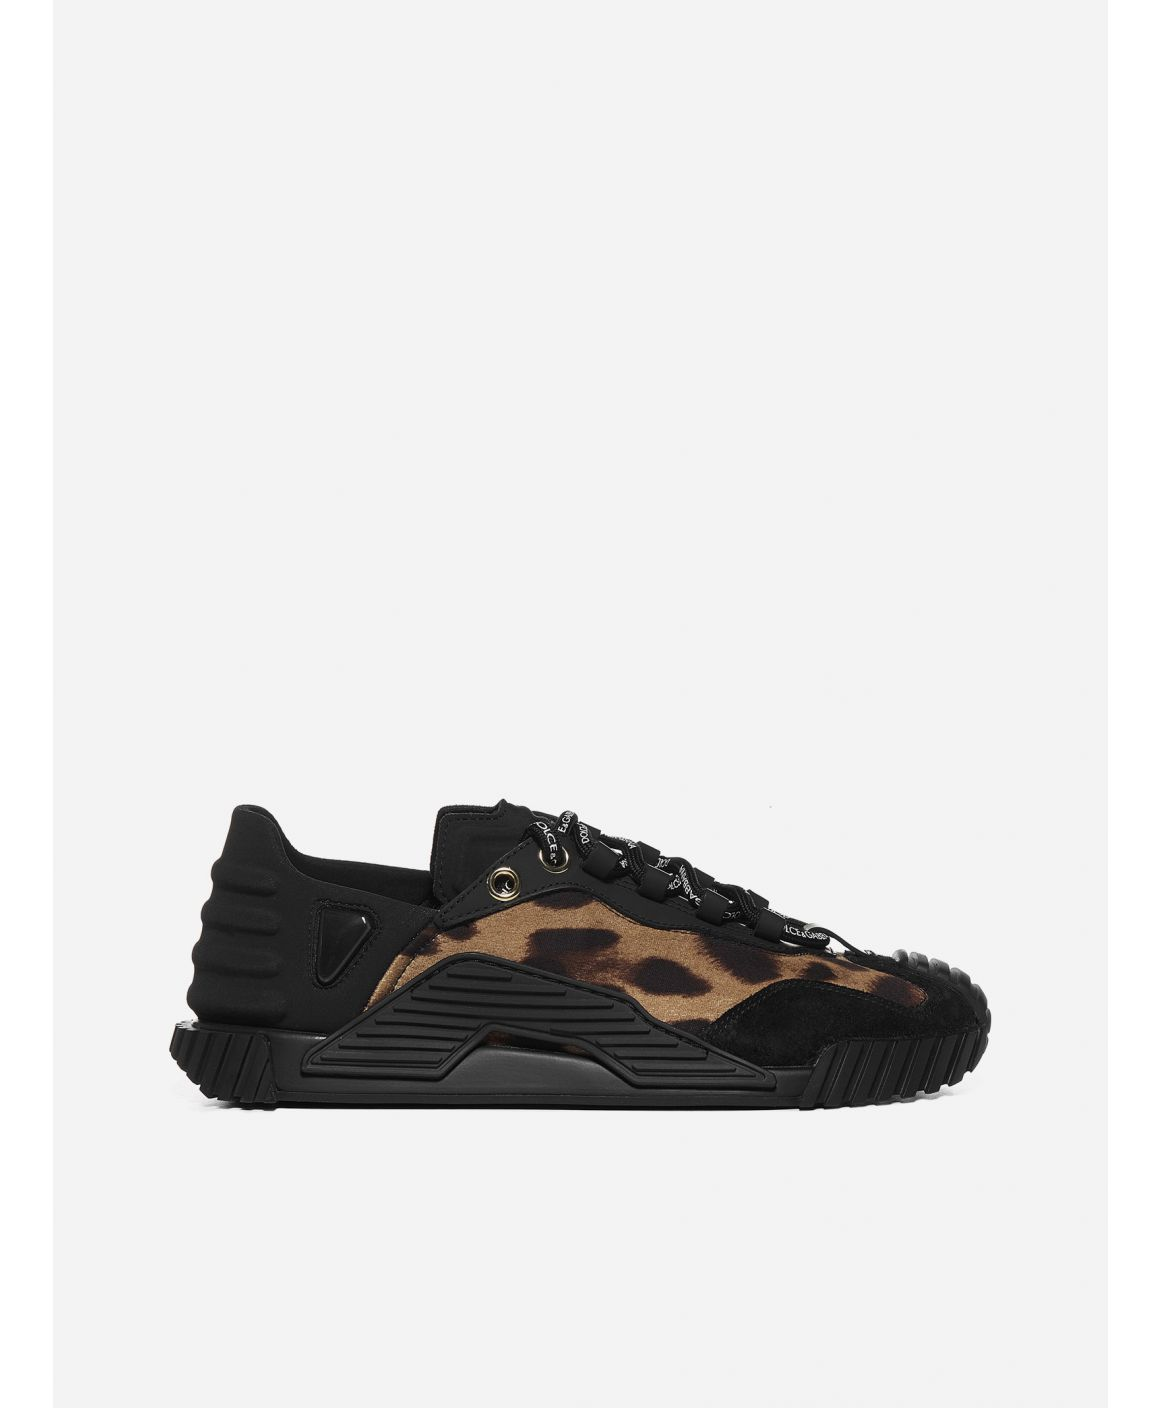 NS1 leather, rubber and leopard print sneakers